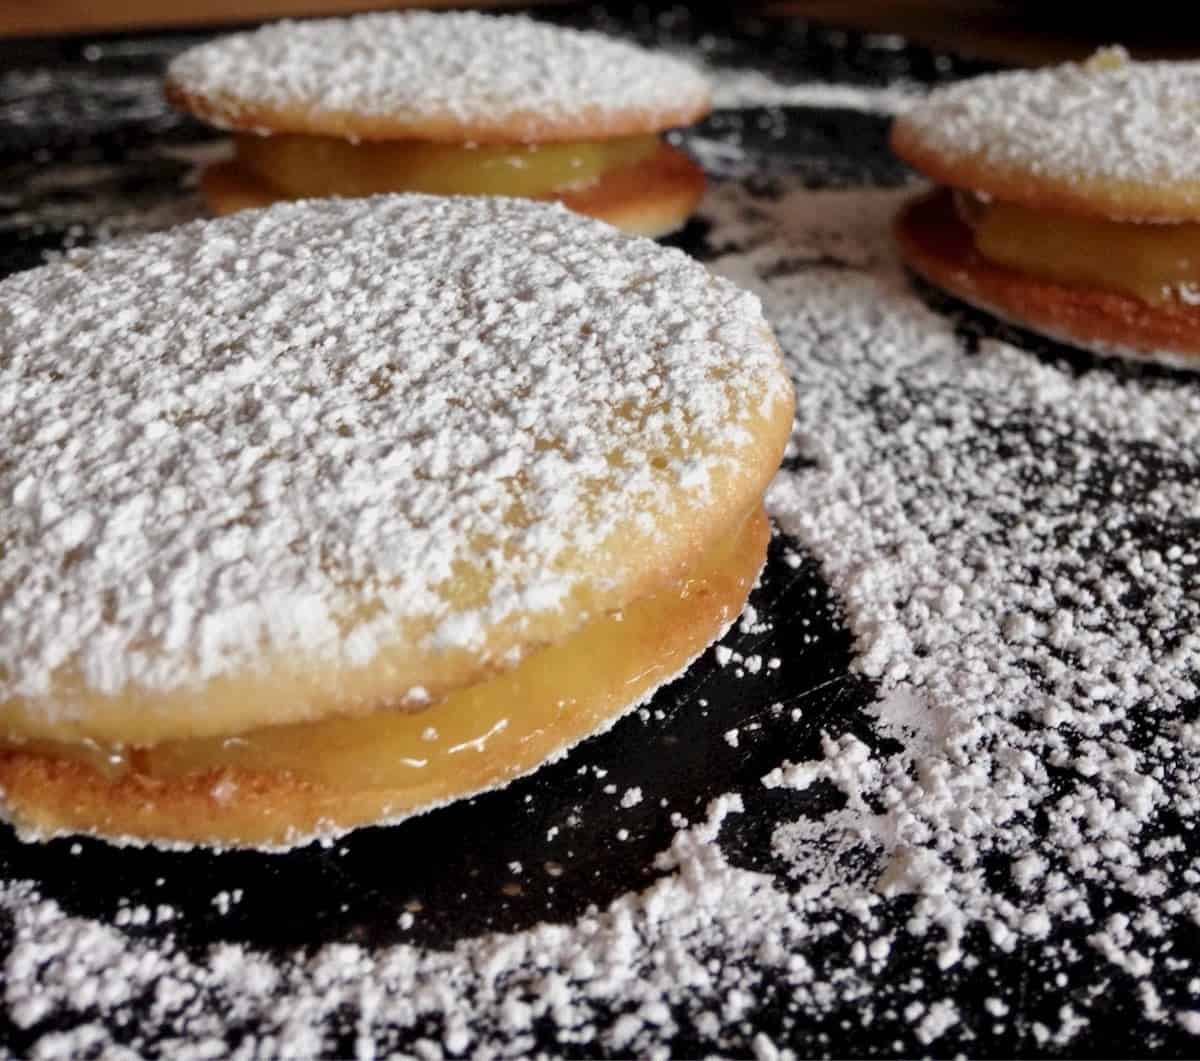 freshest corn whoopie pies filled with lemon curd and dusted with powdered sugar